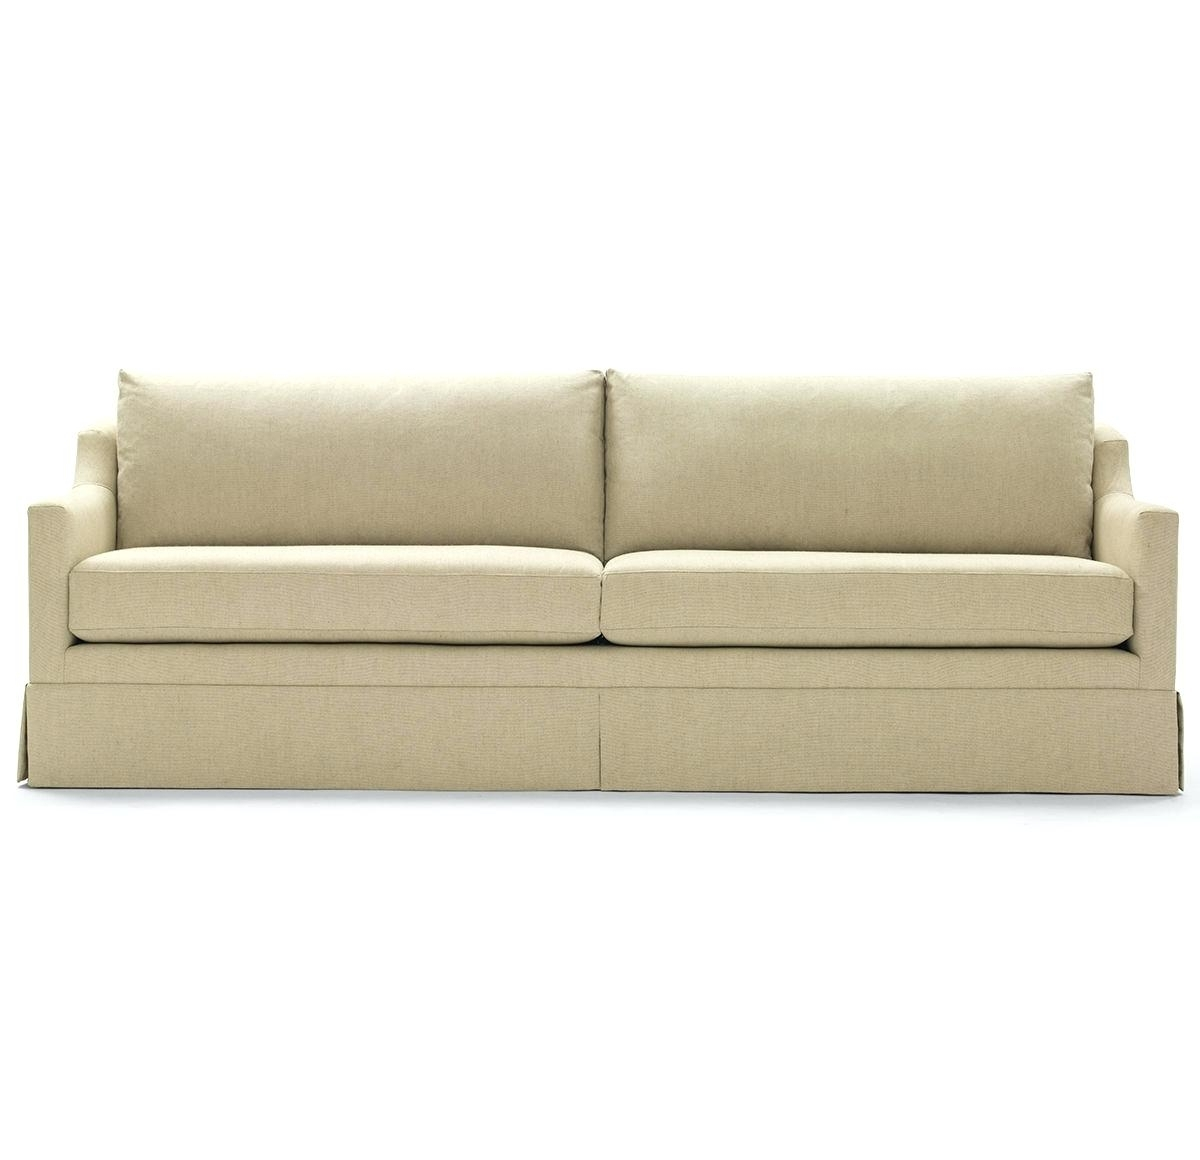 Halifax Sectional Sofas In Latest Sectional Sofa Bed Halifax – Adriane (View 16 of 20)